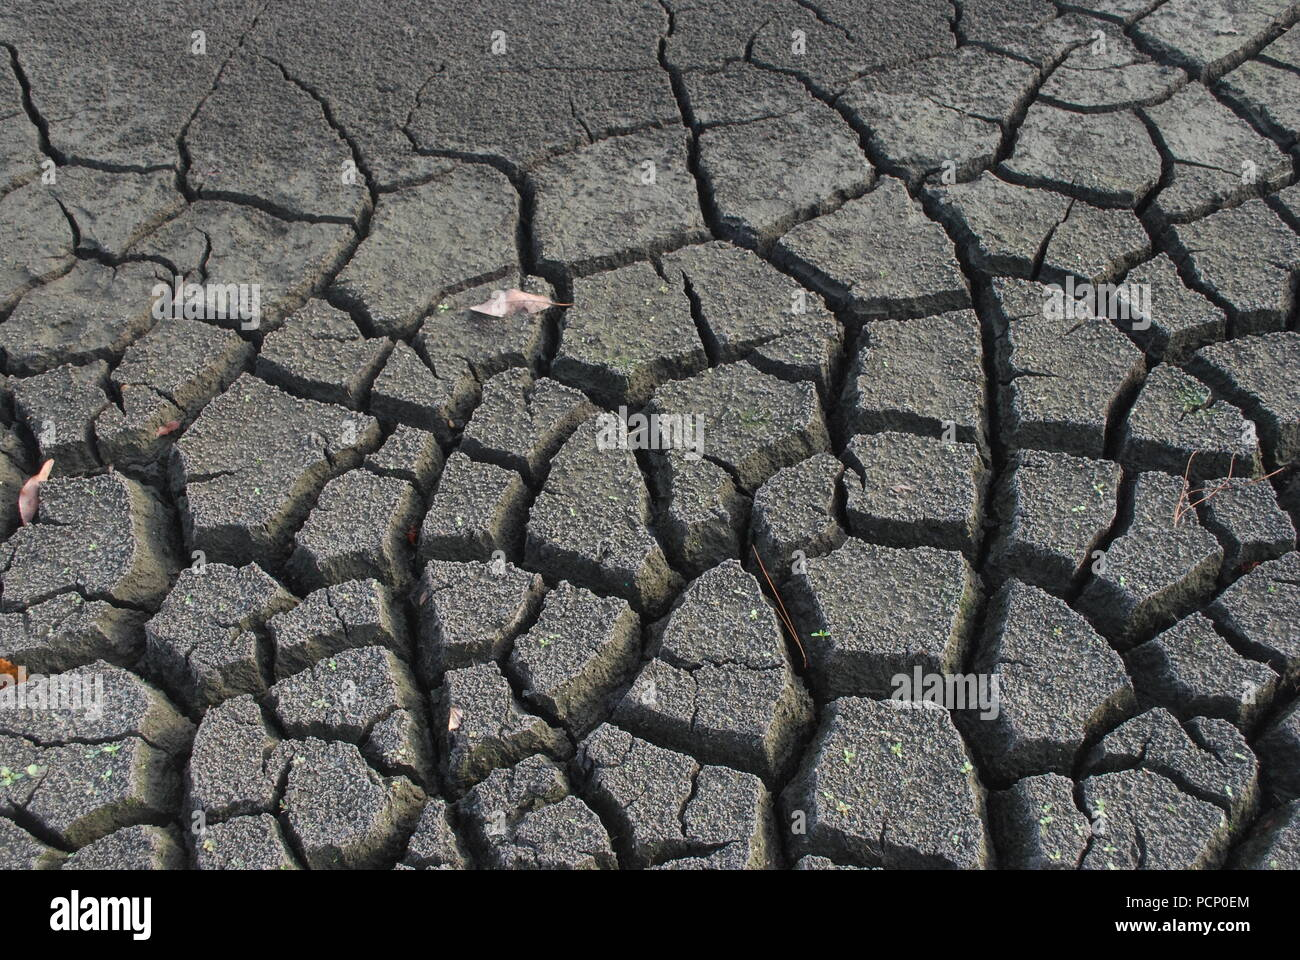 Cracked soil. Desert. Dry land. Break, split, rift, cleft. Poor ecology concept. Flaw, Thirst. Newborn tree sprout - Stock Image